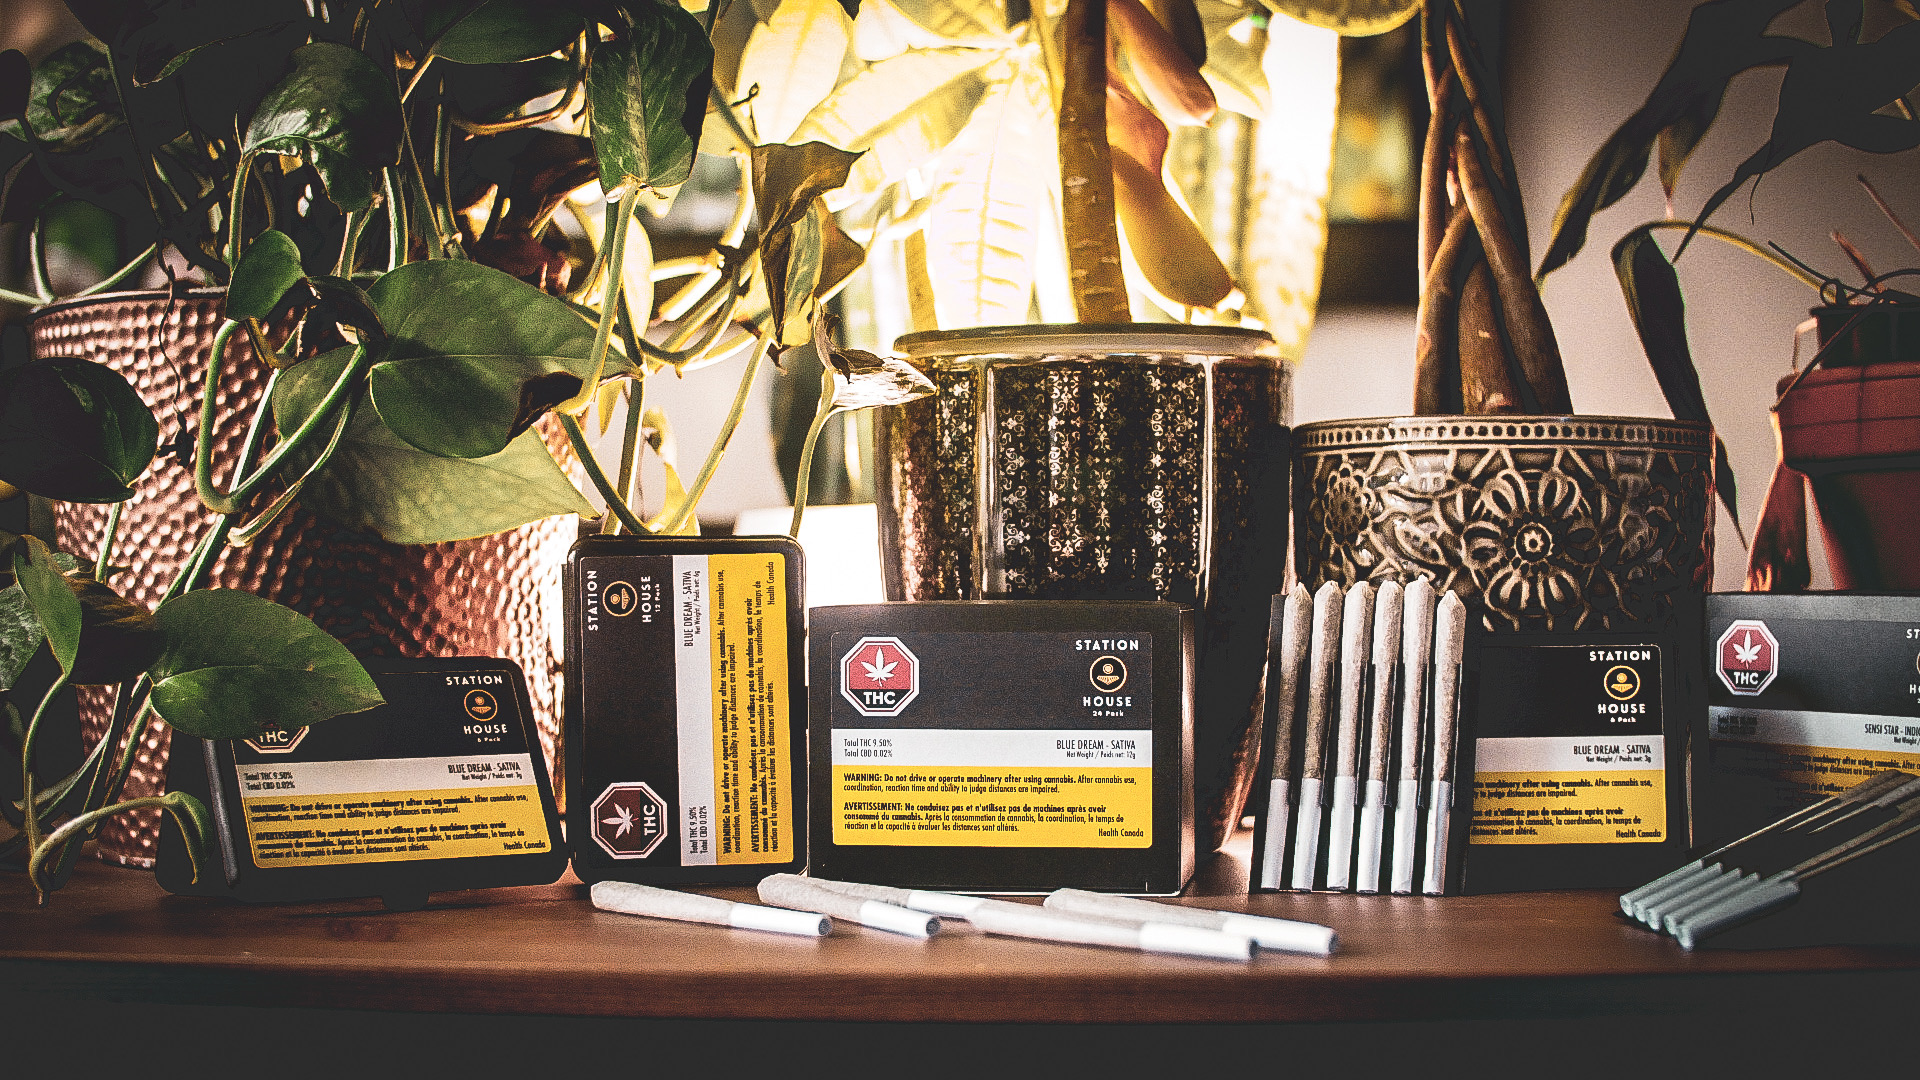 """Sensi Brands Inc. Receives Health Canada Sales License, Makes another Veteran Appointment, and Announces Launch of New Pre-Roll Brand """"Station House""""."""